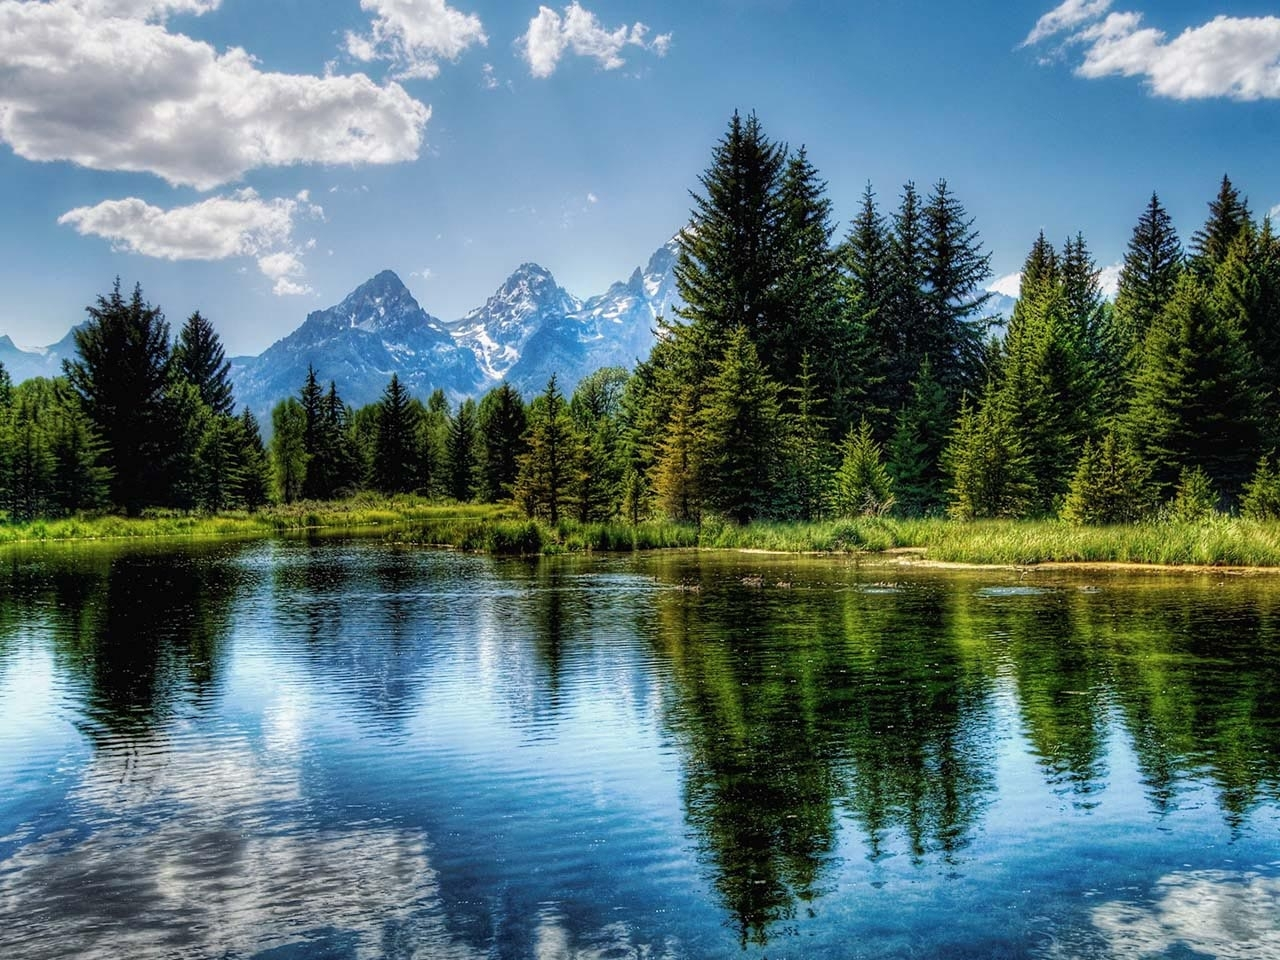 31559 download wallpaper Landscape, Rivers, Mountains screensavers and pictures for free